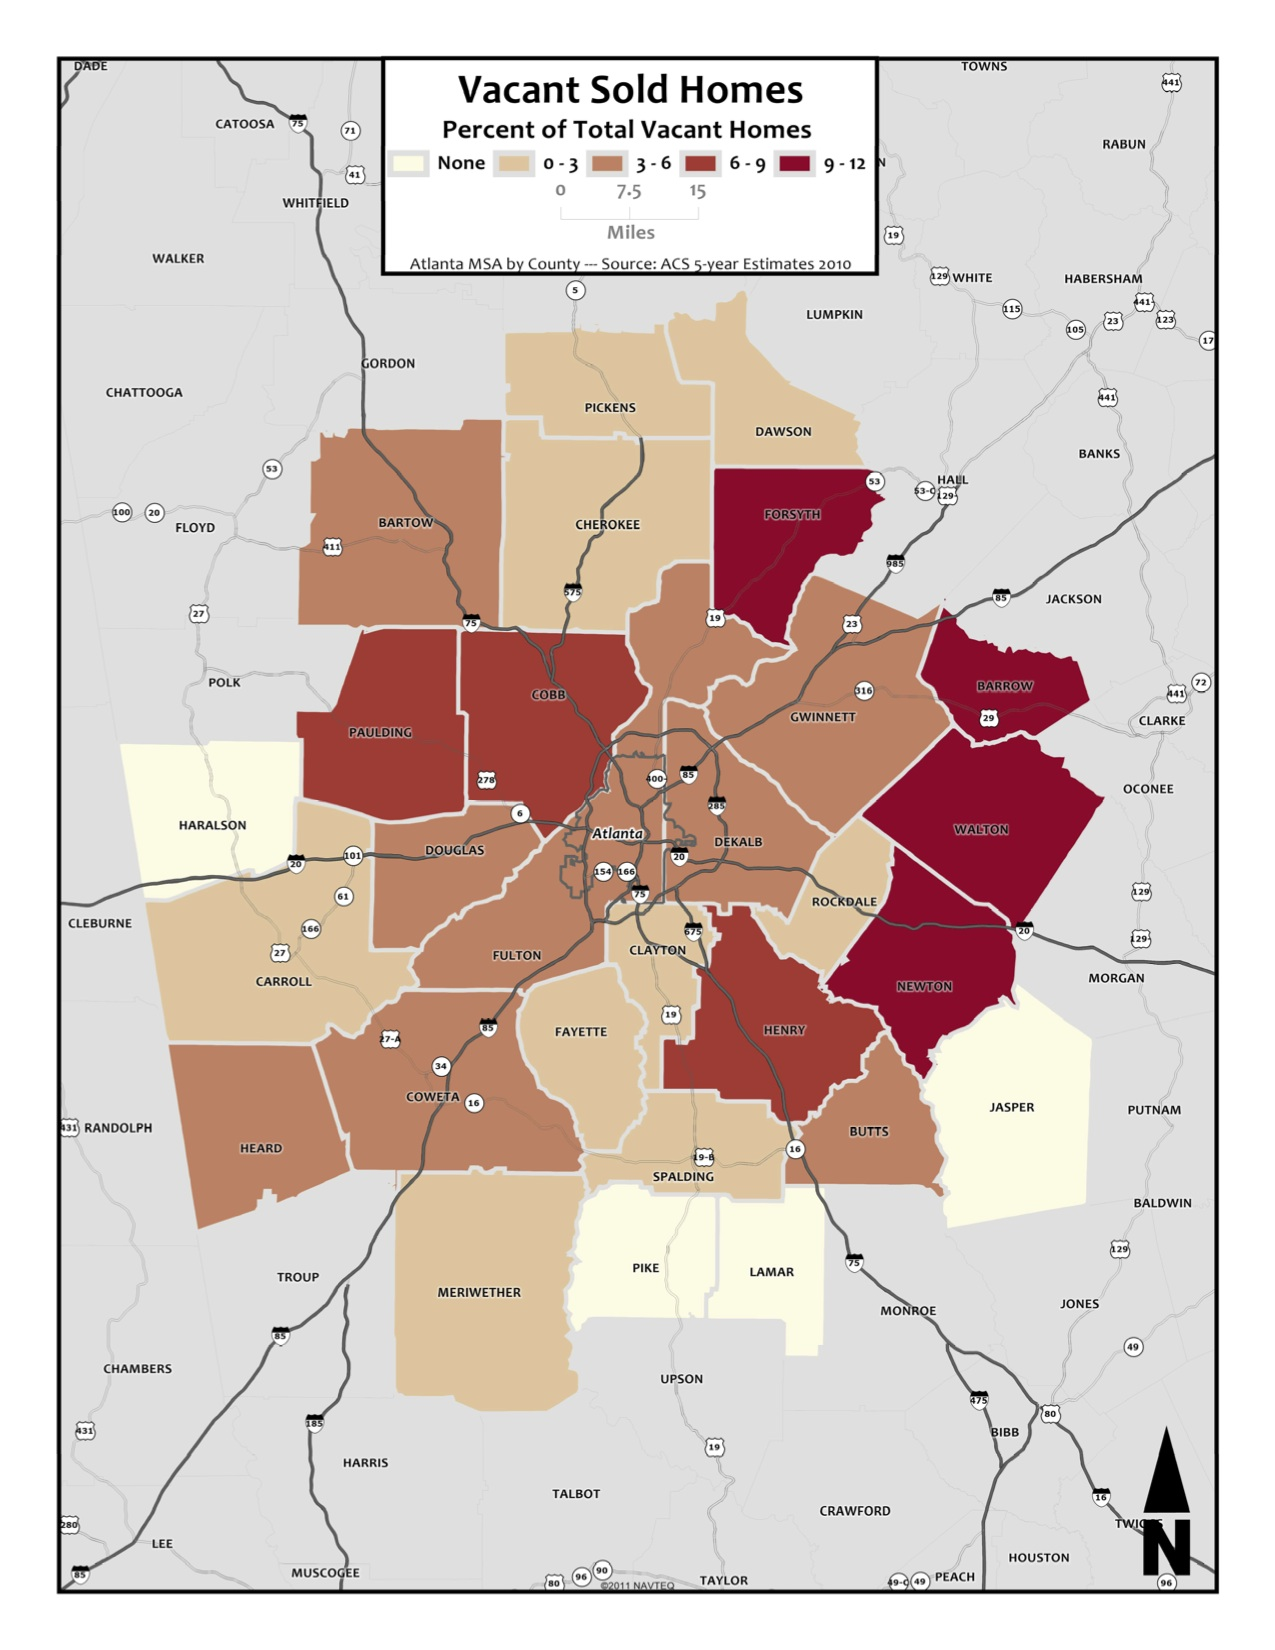 Vacant Sold Homes – metro counties